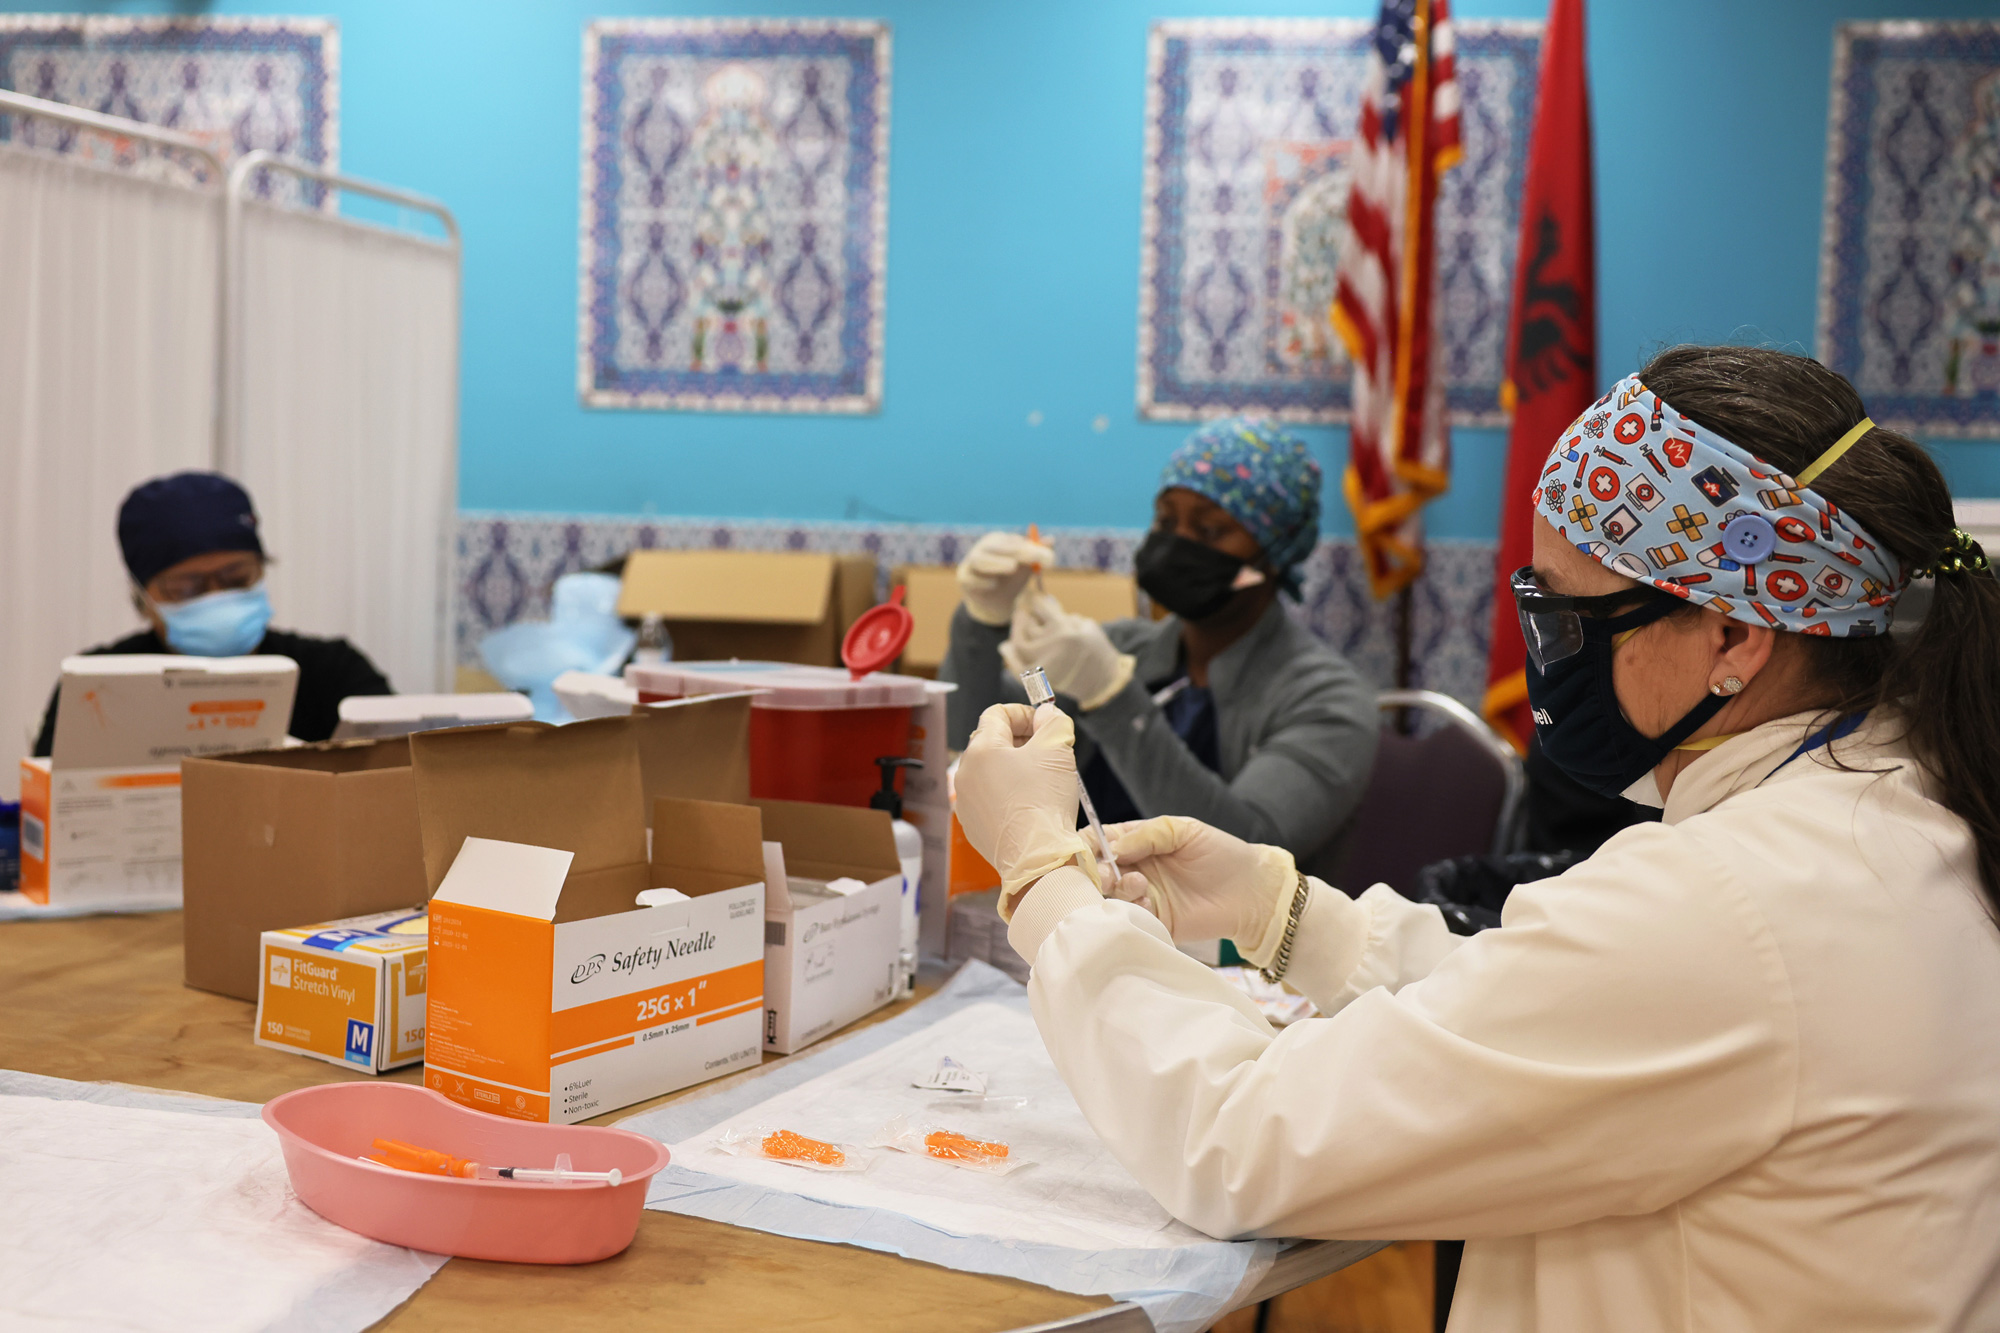 Northwell Health medical staff members prepare doses of the Johnson & Johnson coronavirus vaccine at the Northwell Health pop-up coronavirus vaccination site at the Albanian Islamic Cultural Center in Staten Island on April 8 in New York City.